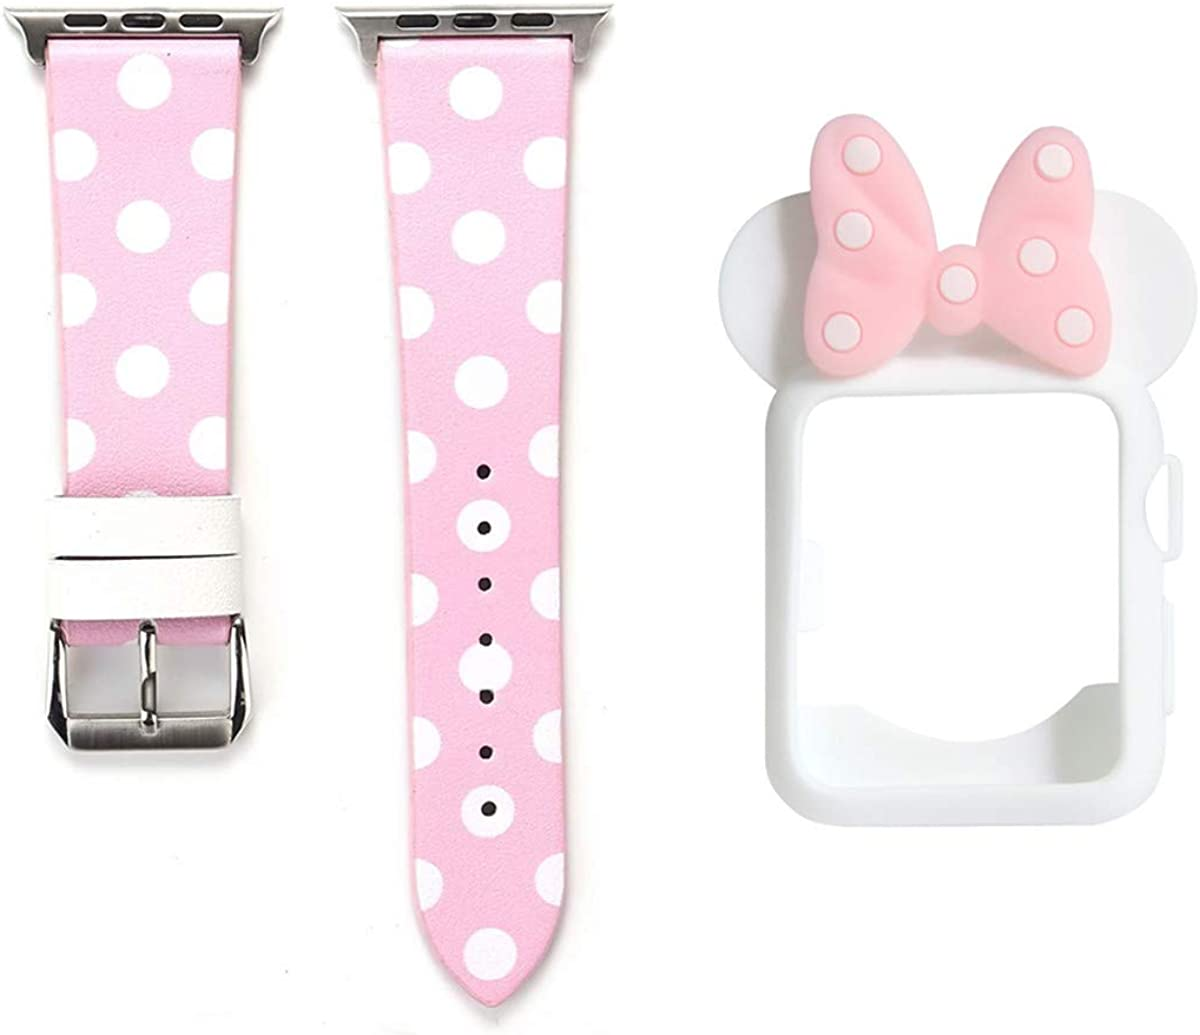 Smarmate Women Girls Band Case Kit, Polka Dots Leather Band and Cute Bowknot Silicone Protective Bumper Case Compatible with 38/40/42/44 mm Apple Watch Series 6/SE/5/4/3/2/1